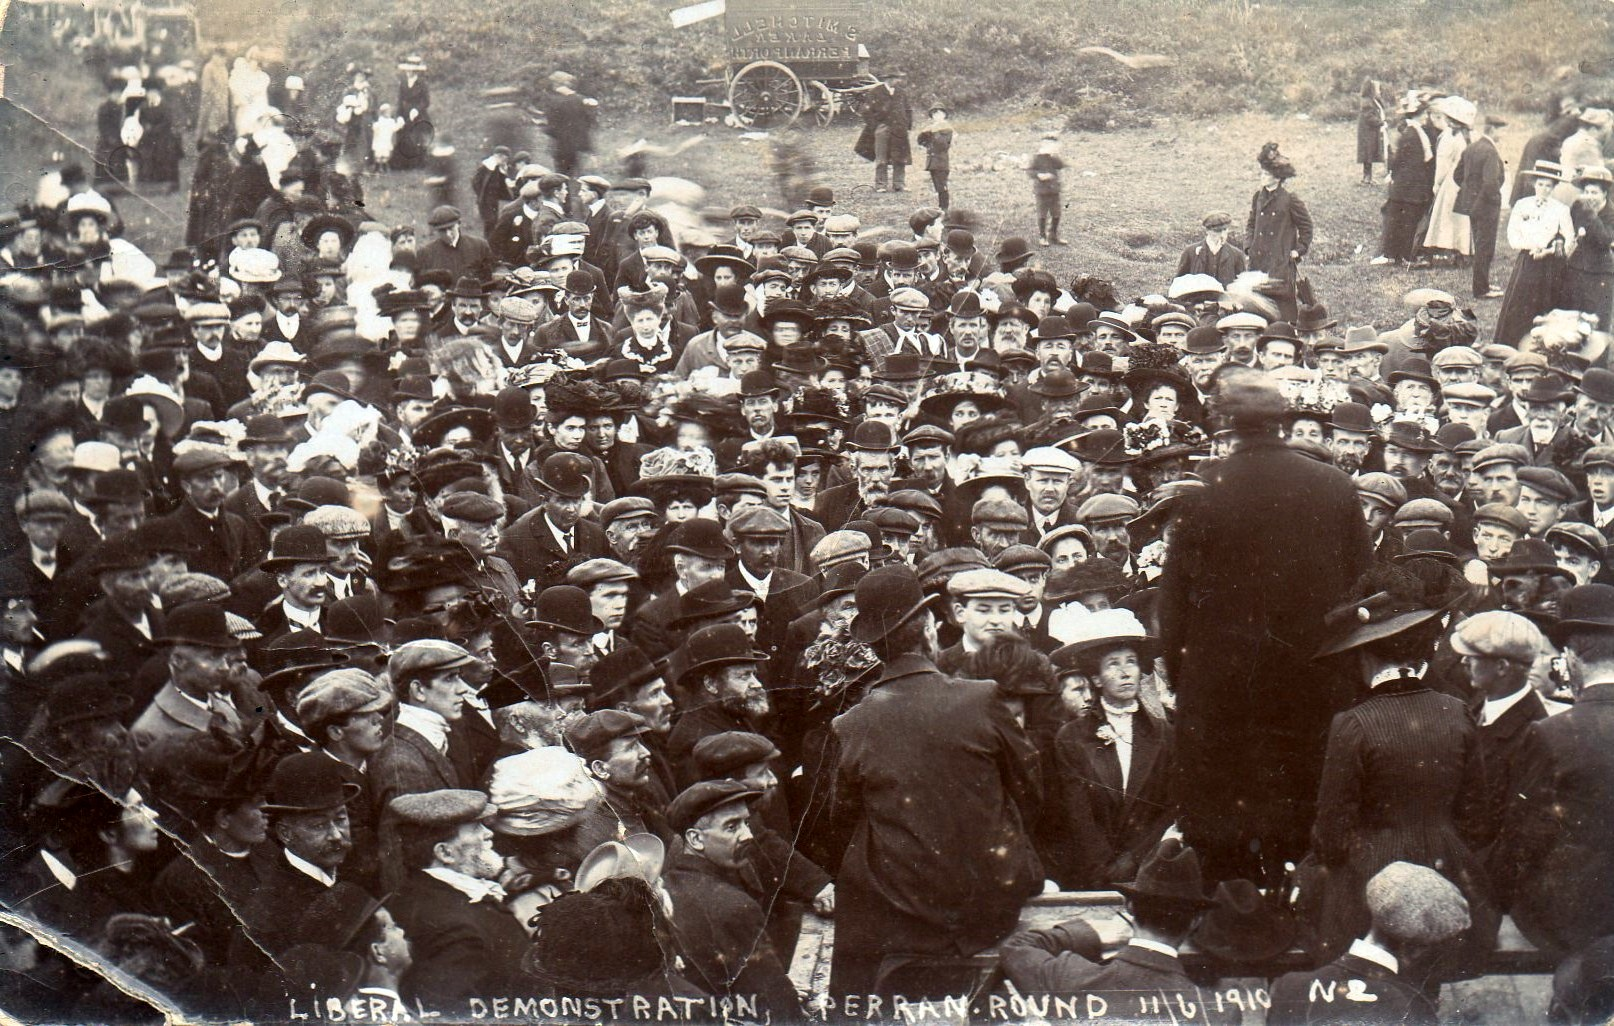 Liberal Demonstration at Perran Round 11 Jun 1910